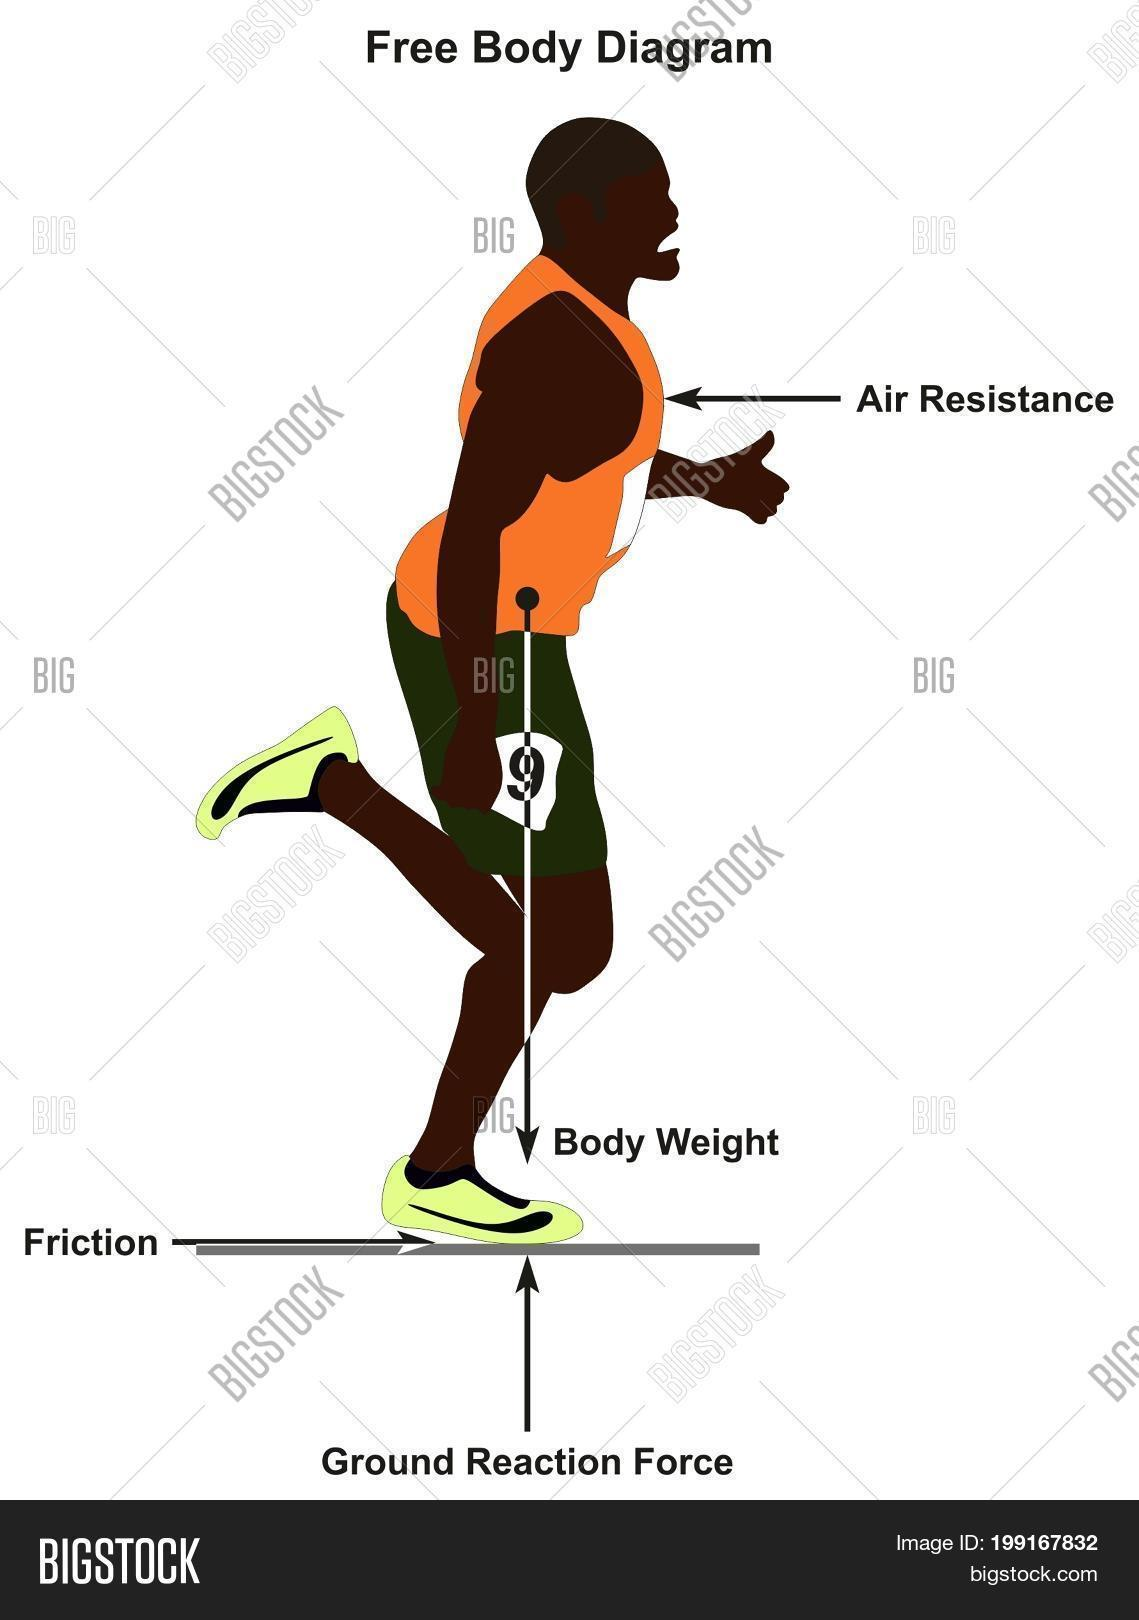 Free body diagram showing man image photo bigstock free body diagram showing a man running in straight line and all forces affect him including ccuart Choice Image